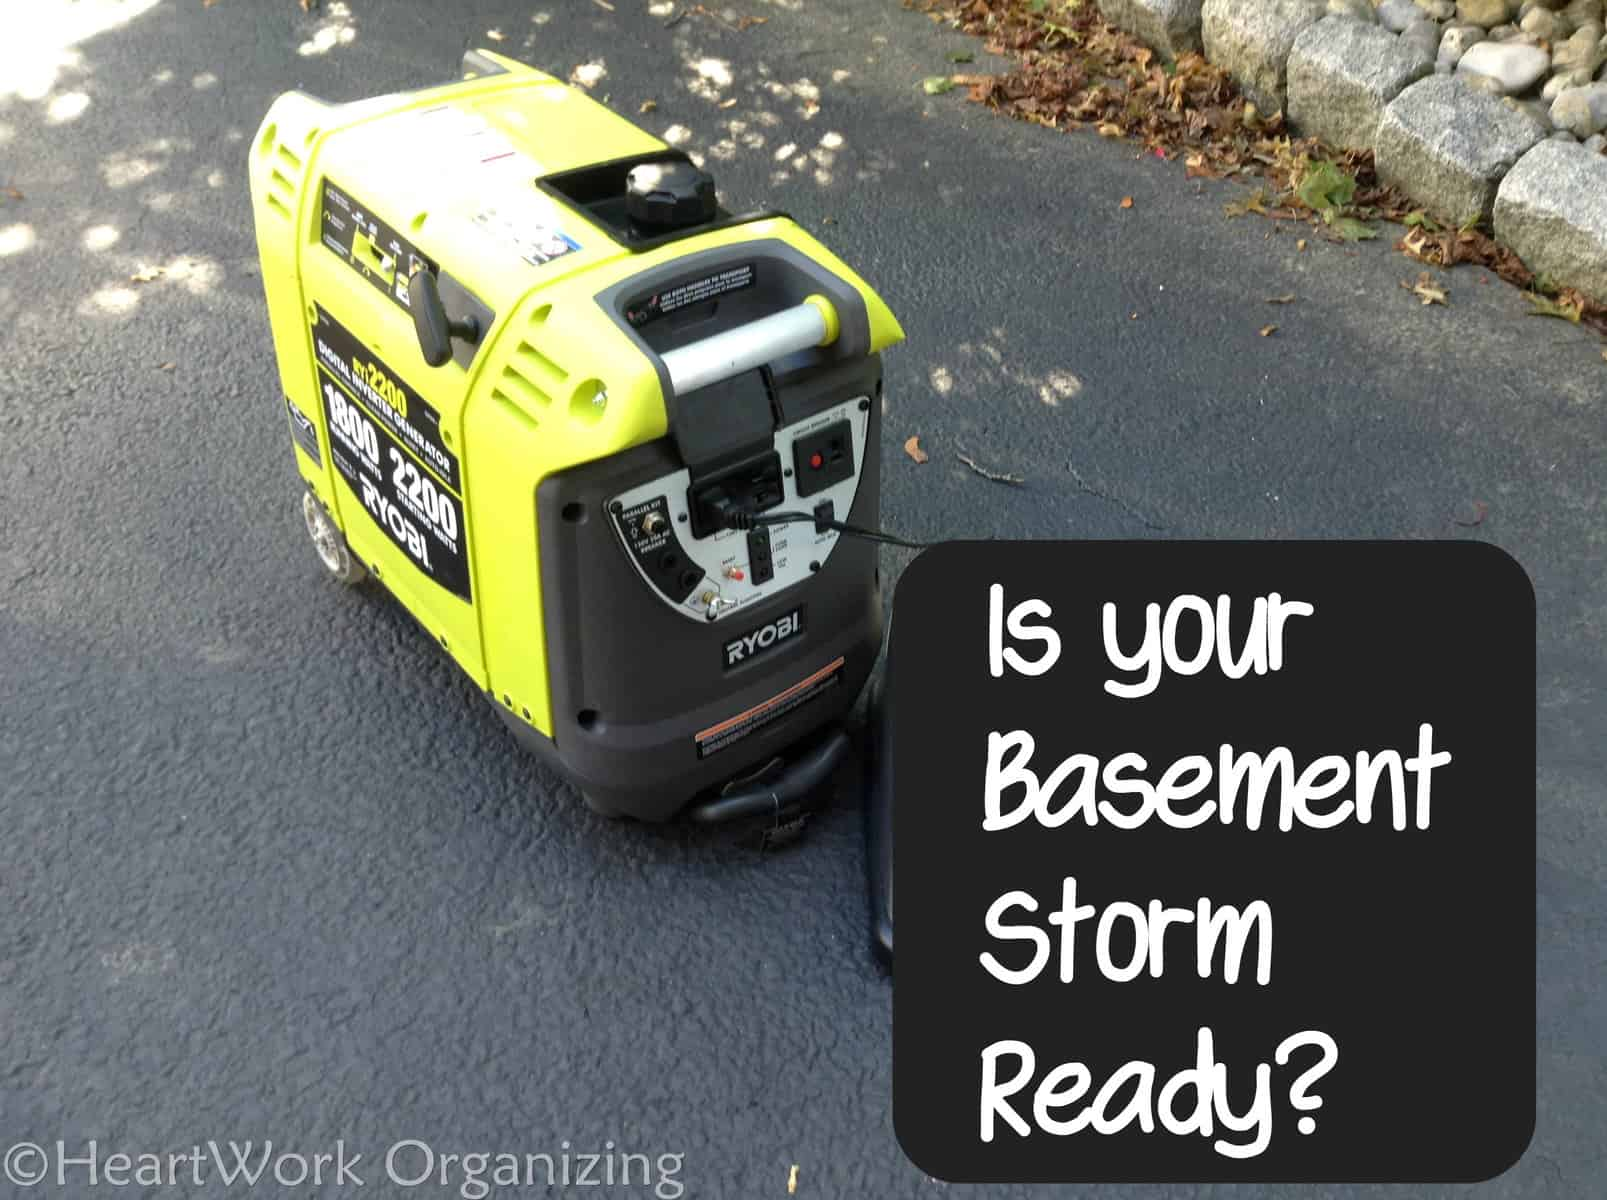 Storm Readiness Ryobi Generator to Backup a Basement Sump Pump